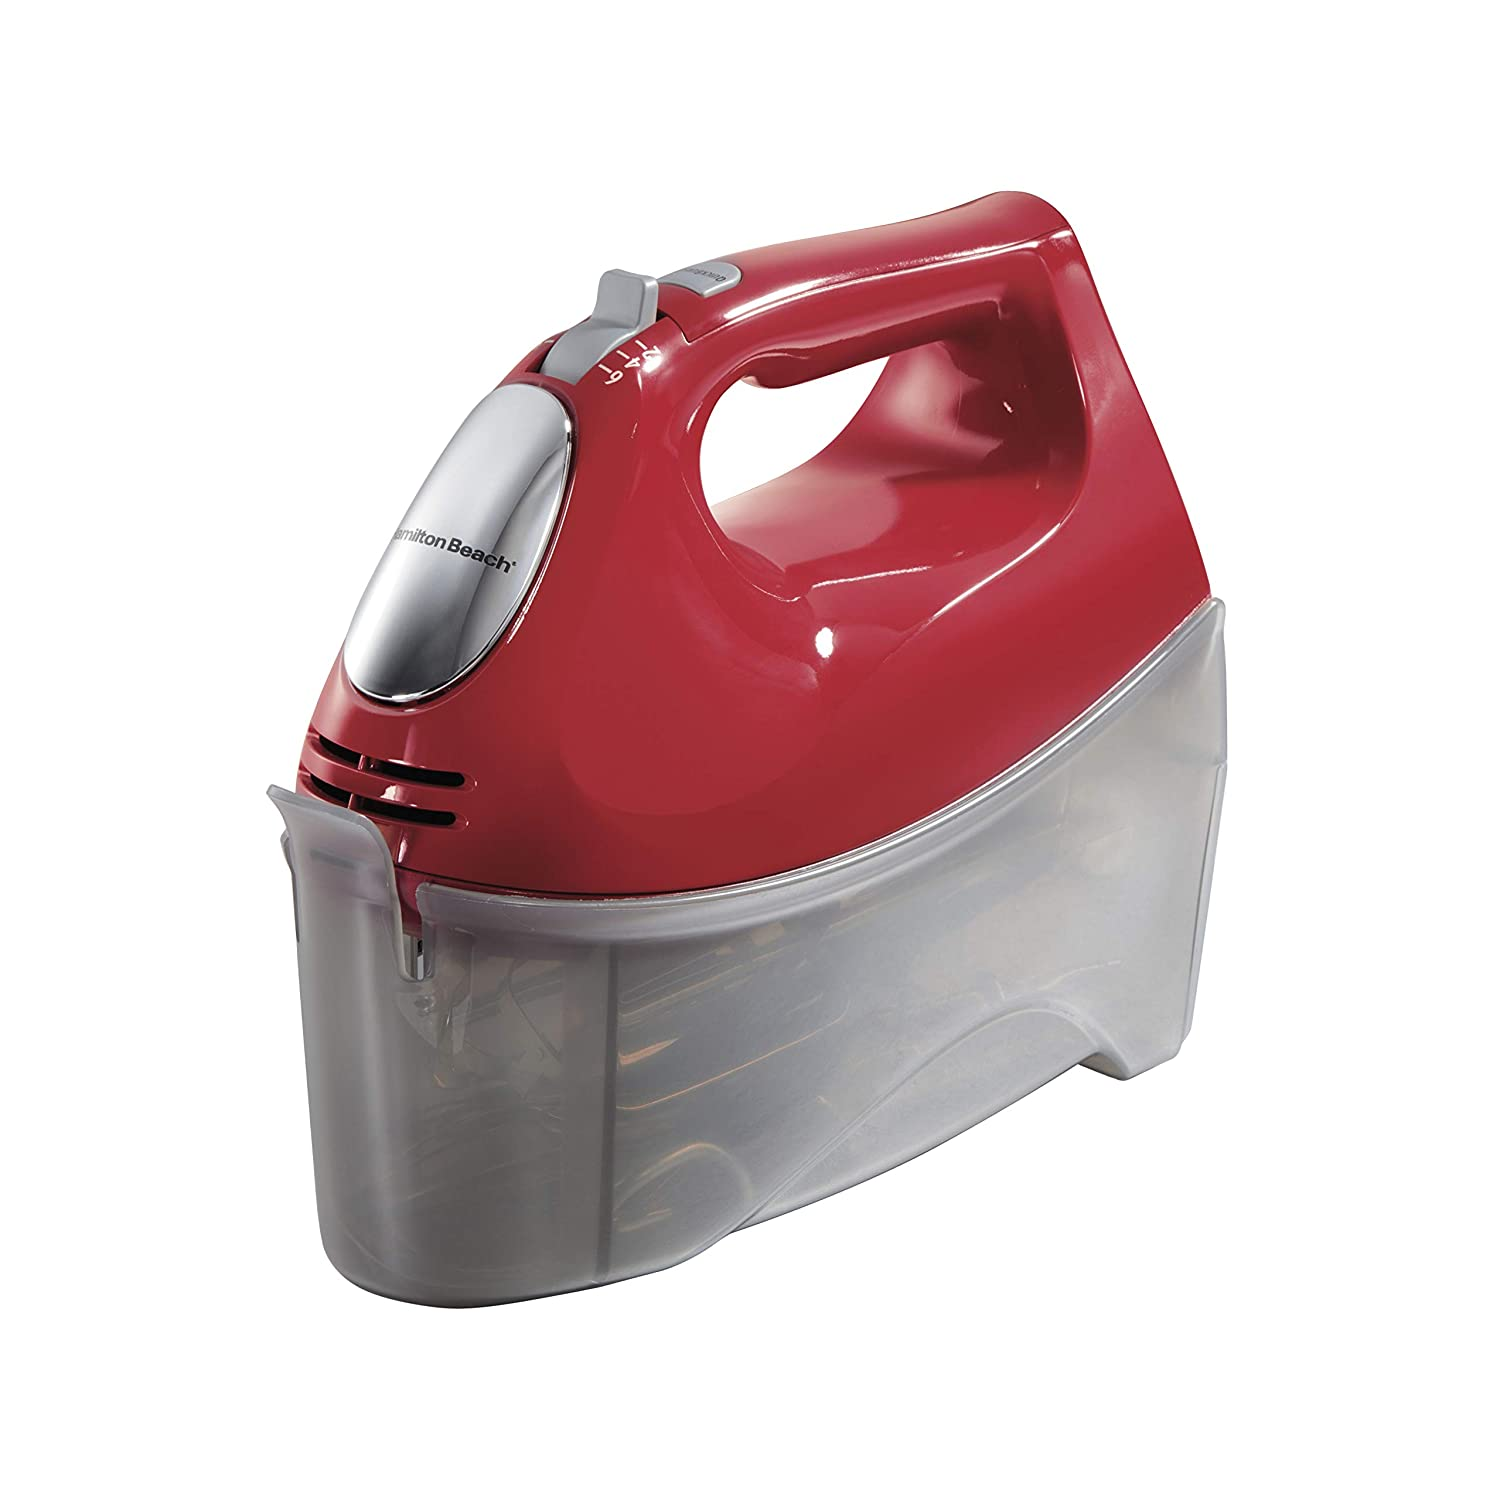 Hamilton Beach (62633R) Electric Hand Mixer, 6 Speed with 275 Watts, Red